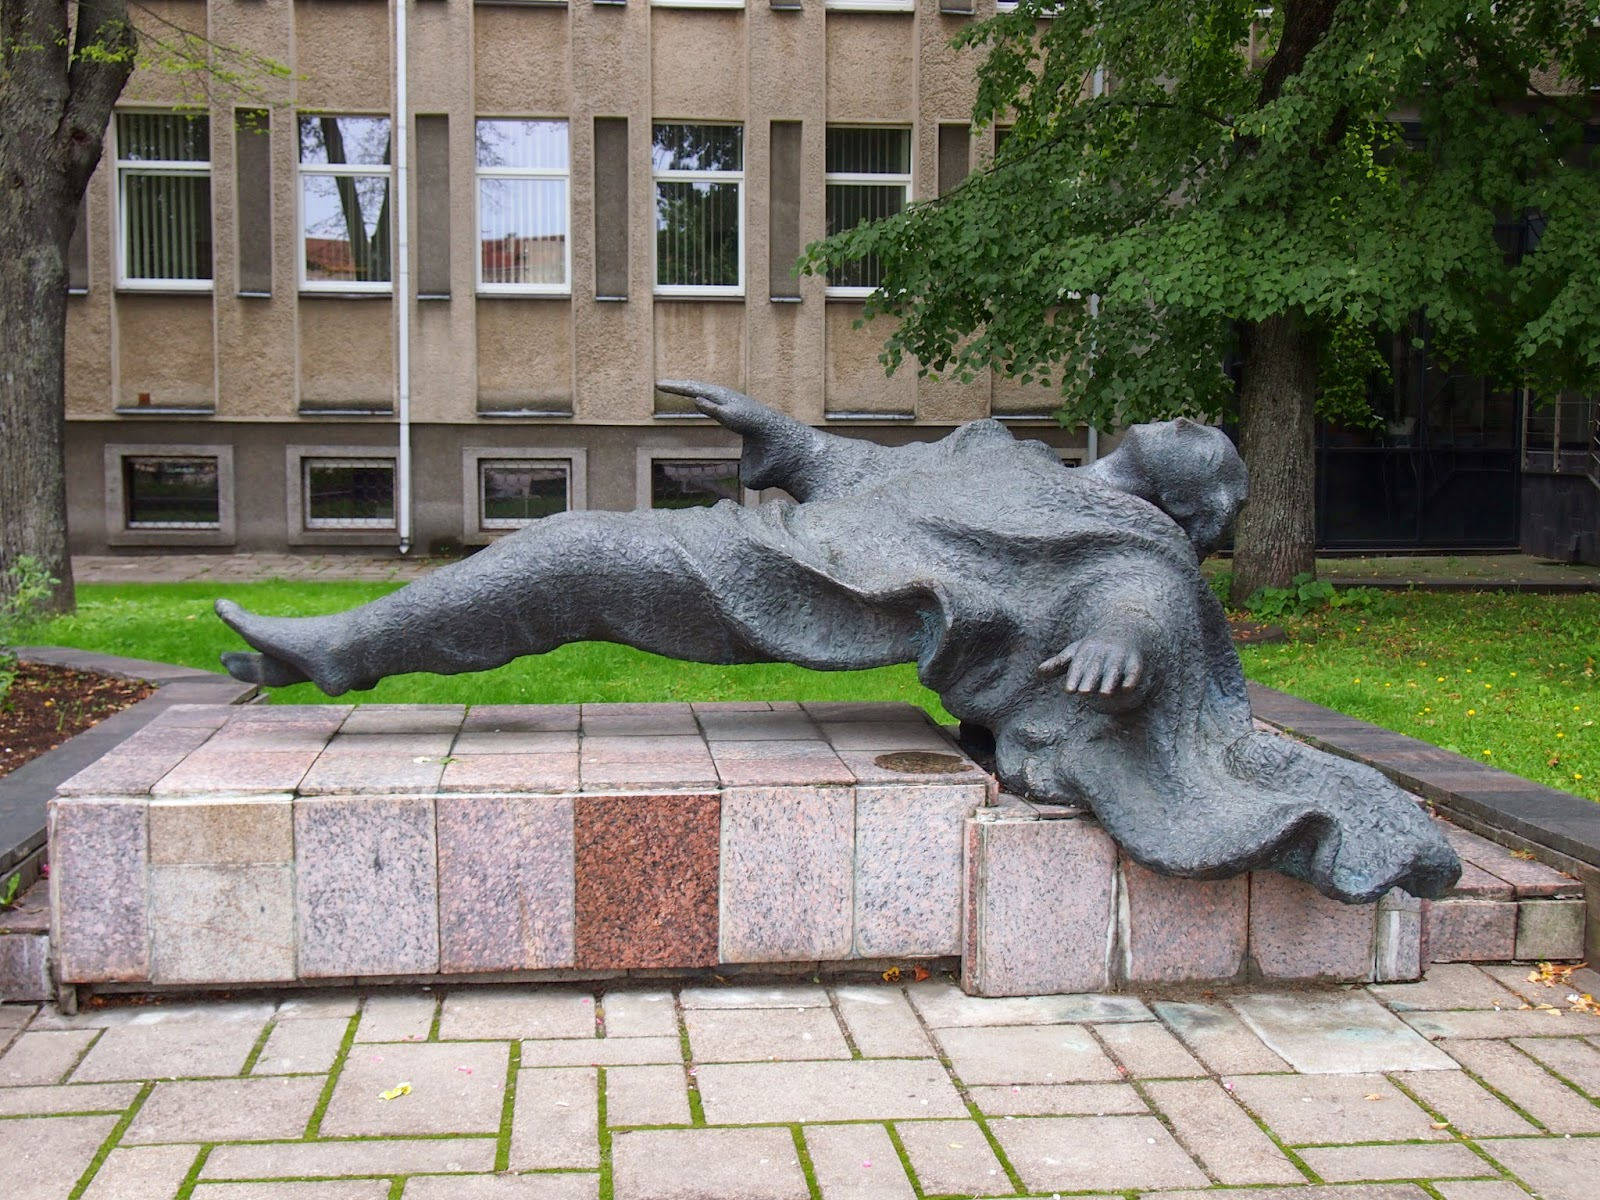 A statue to commemorate Roma Kalanta who died from self-immolation during a protest in Kaunas